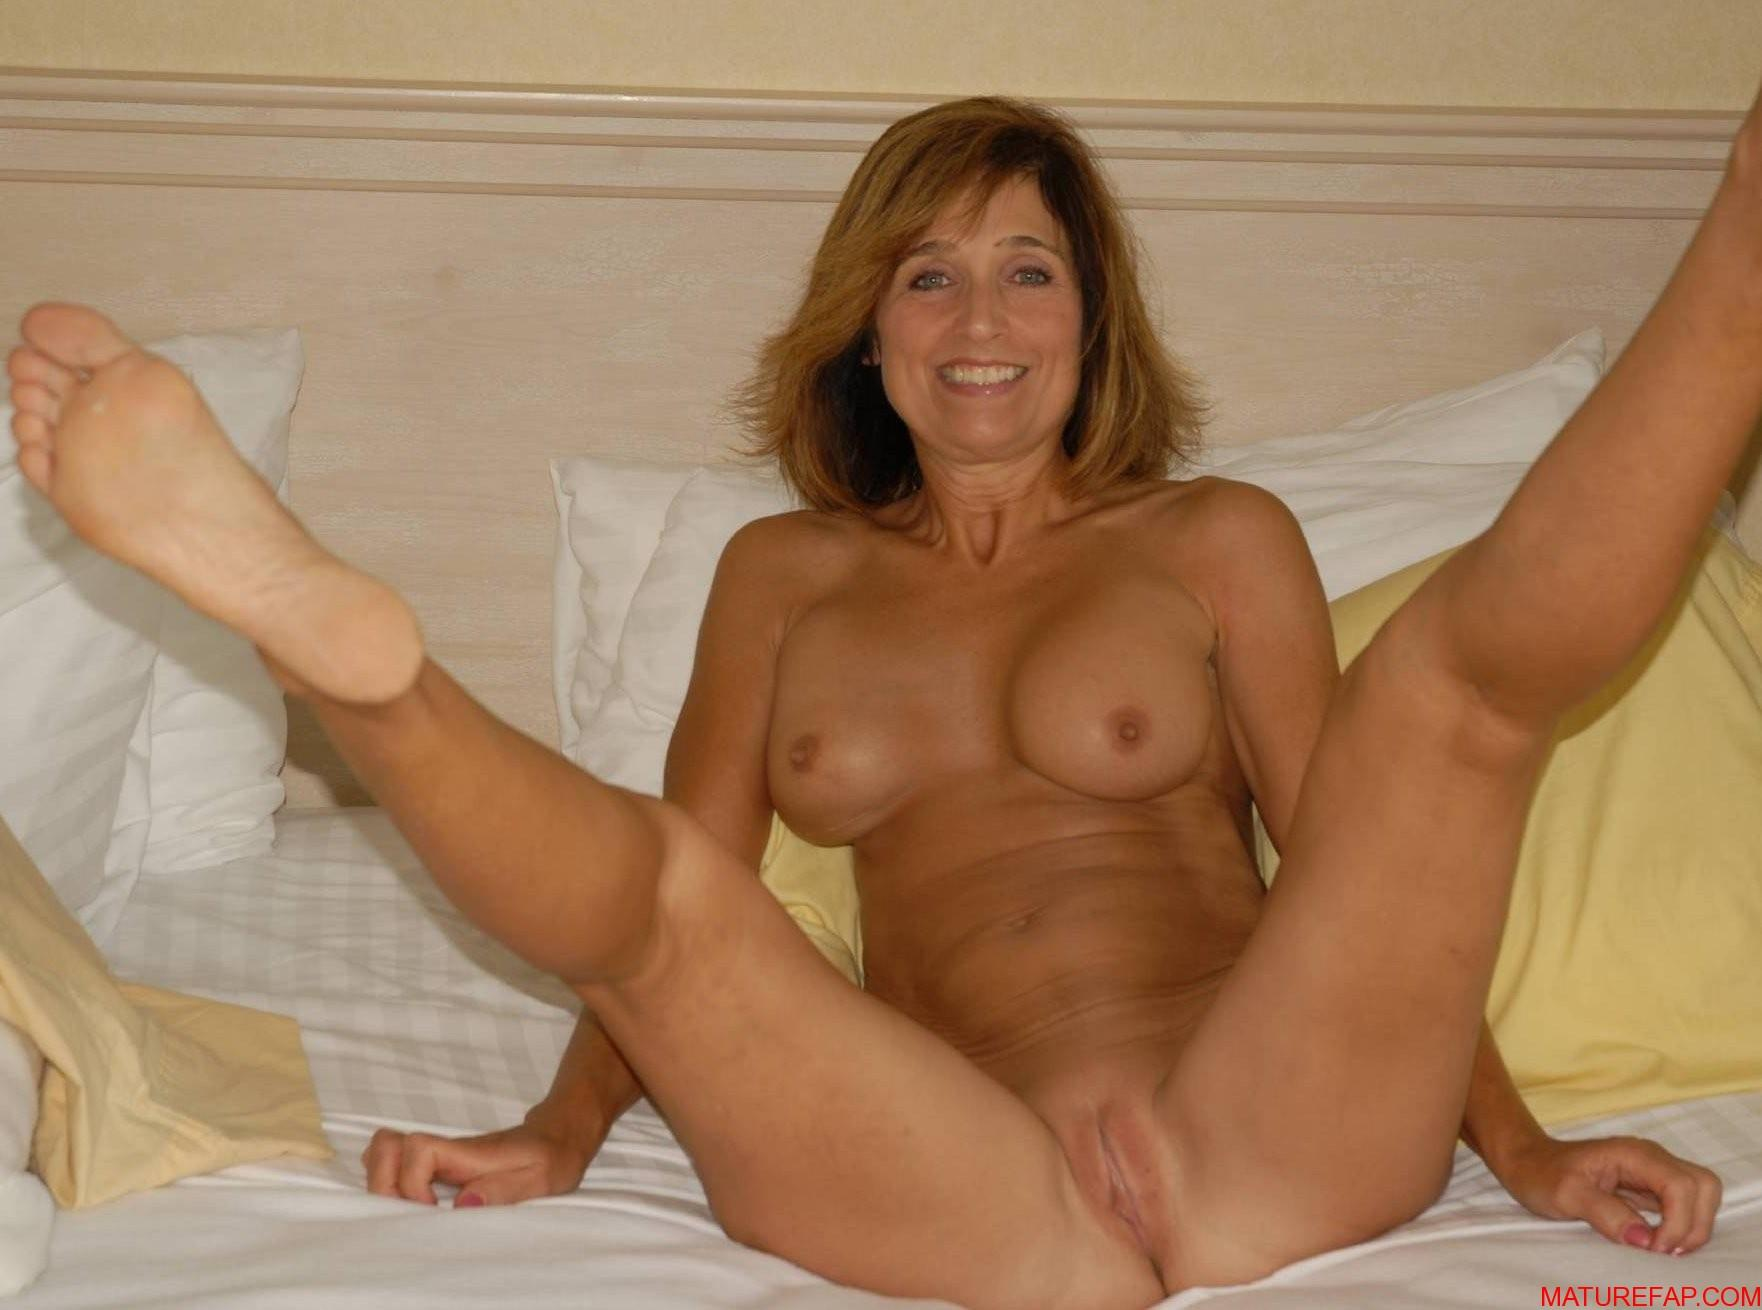 Mature nude amateur spreading moms